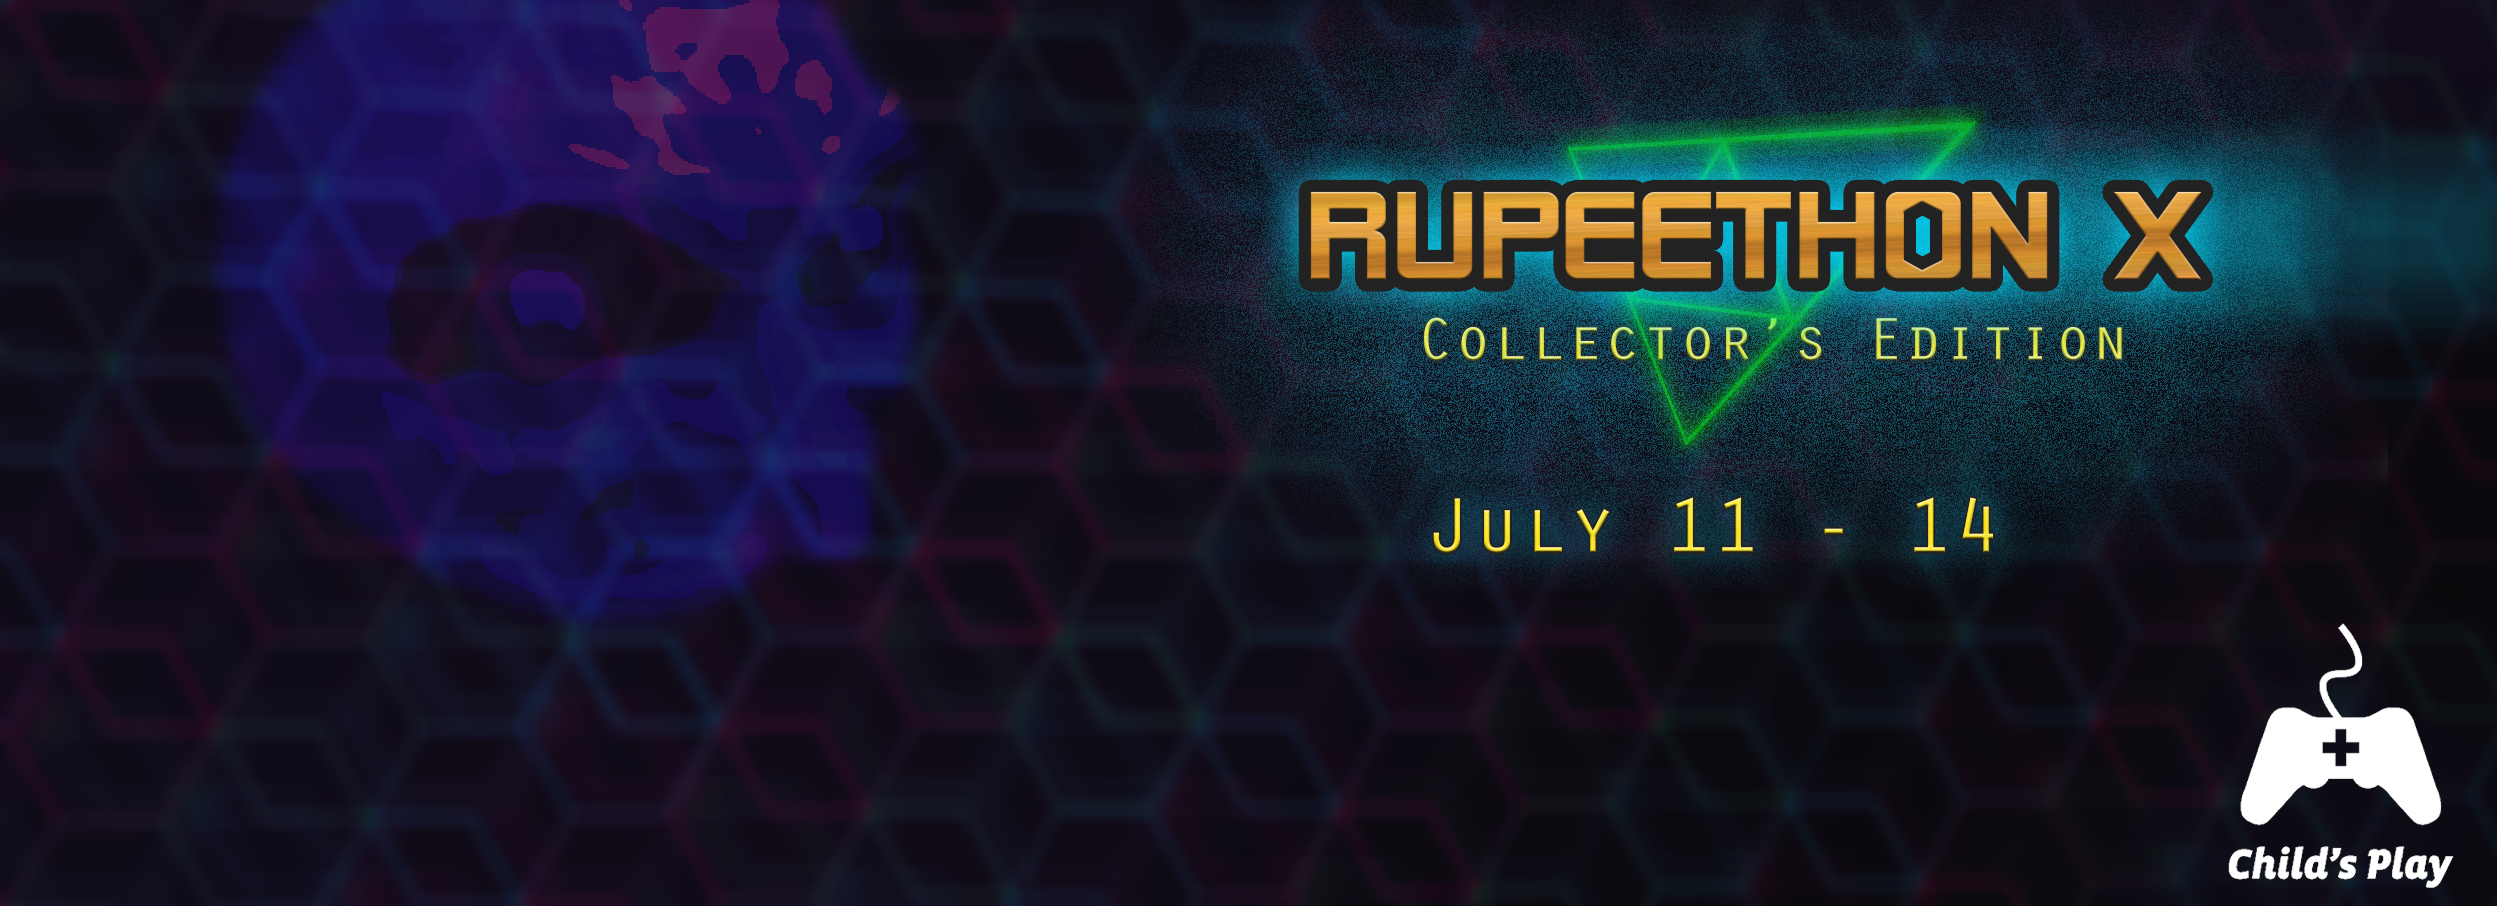 Rupeethon X is Live!